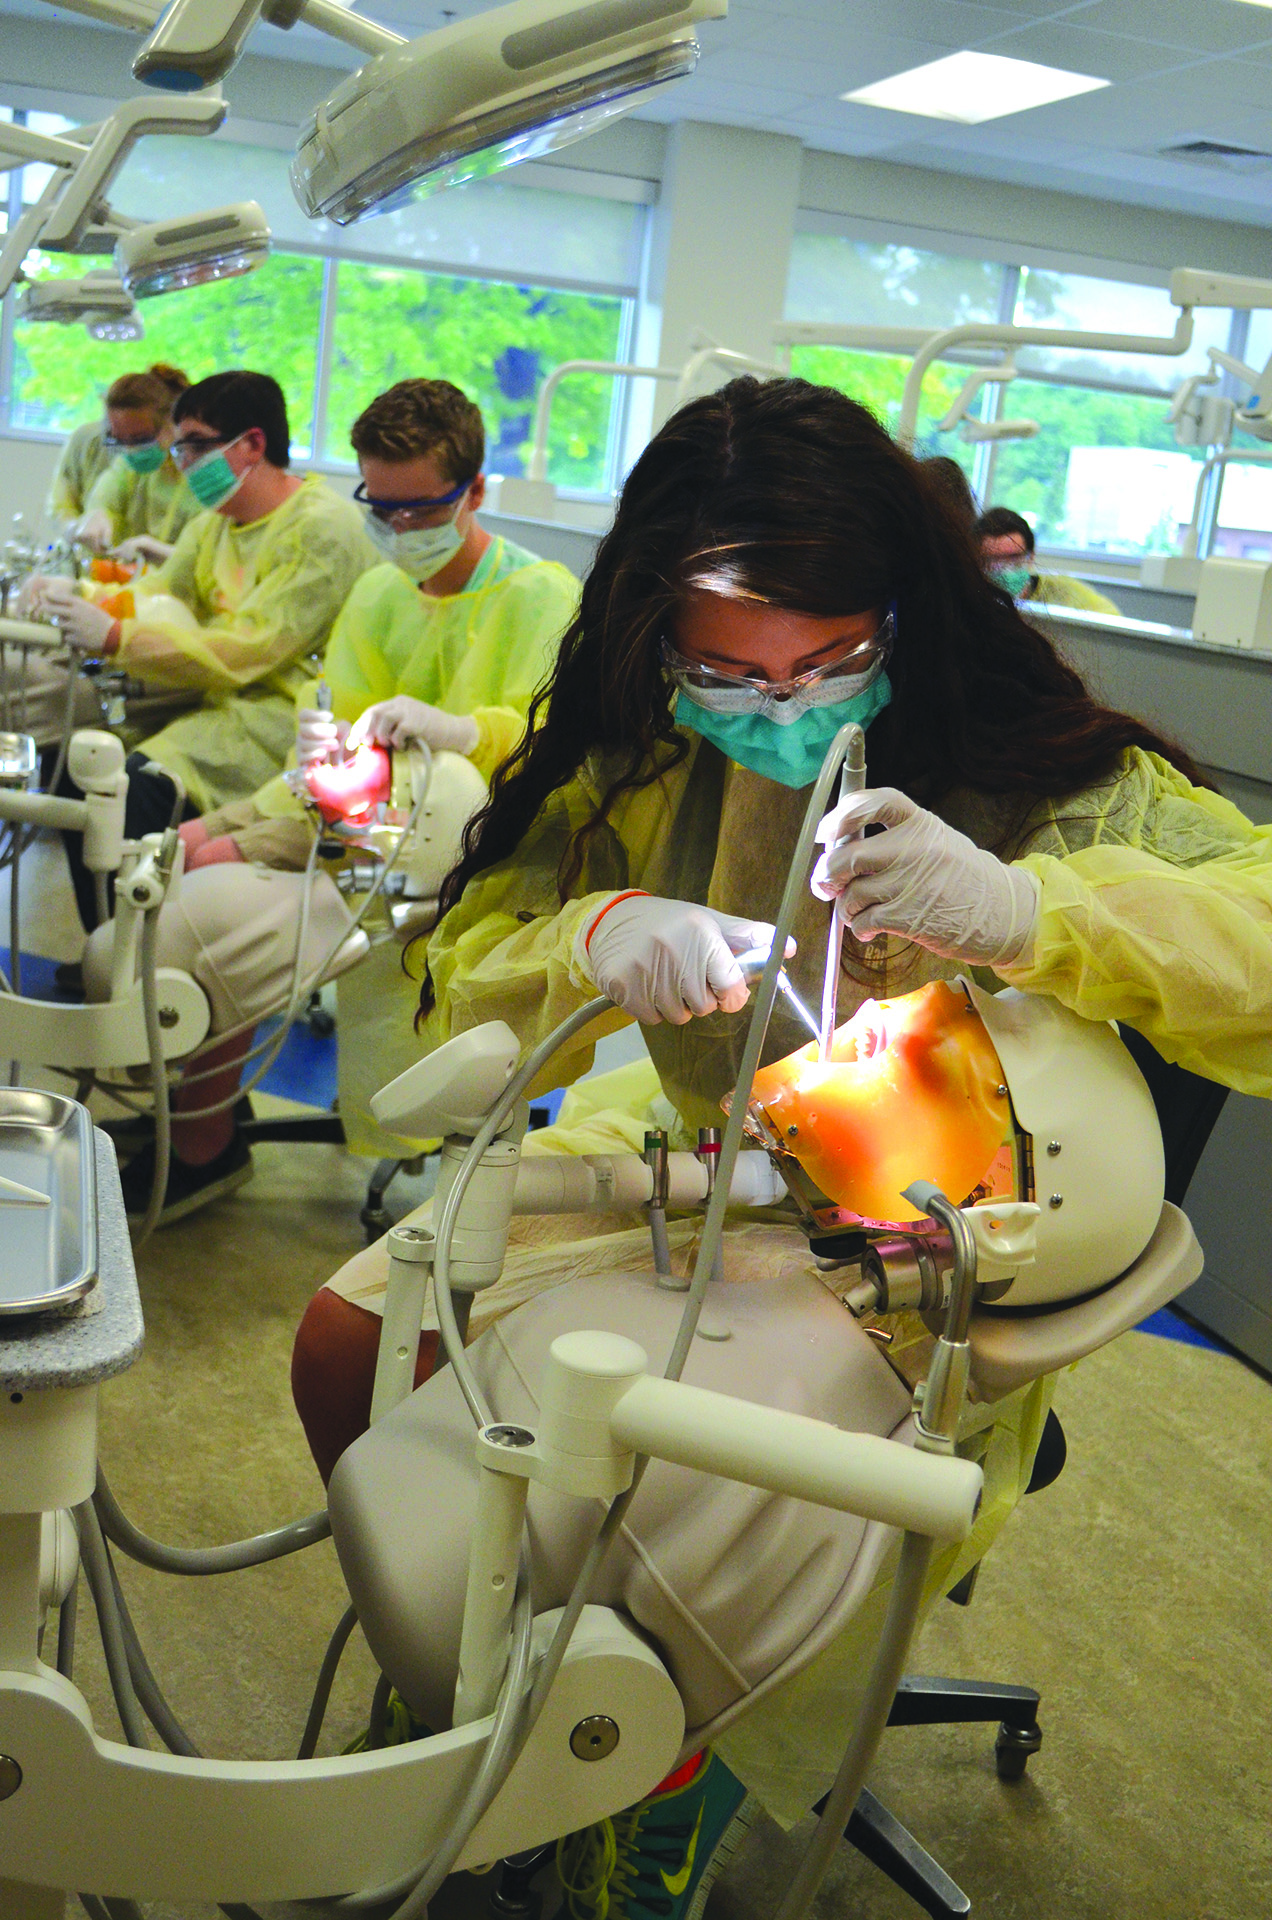 Campers working in the dental lab